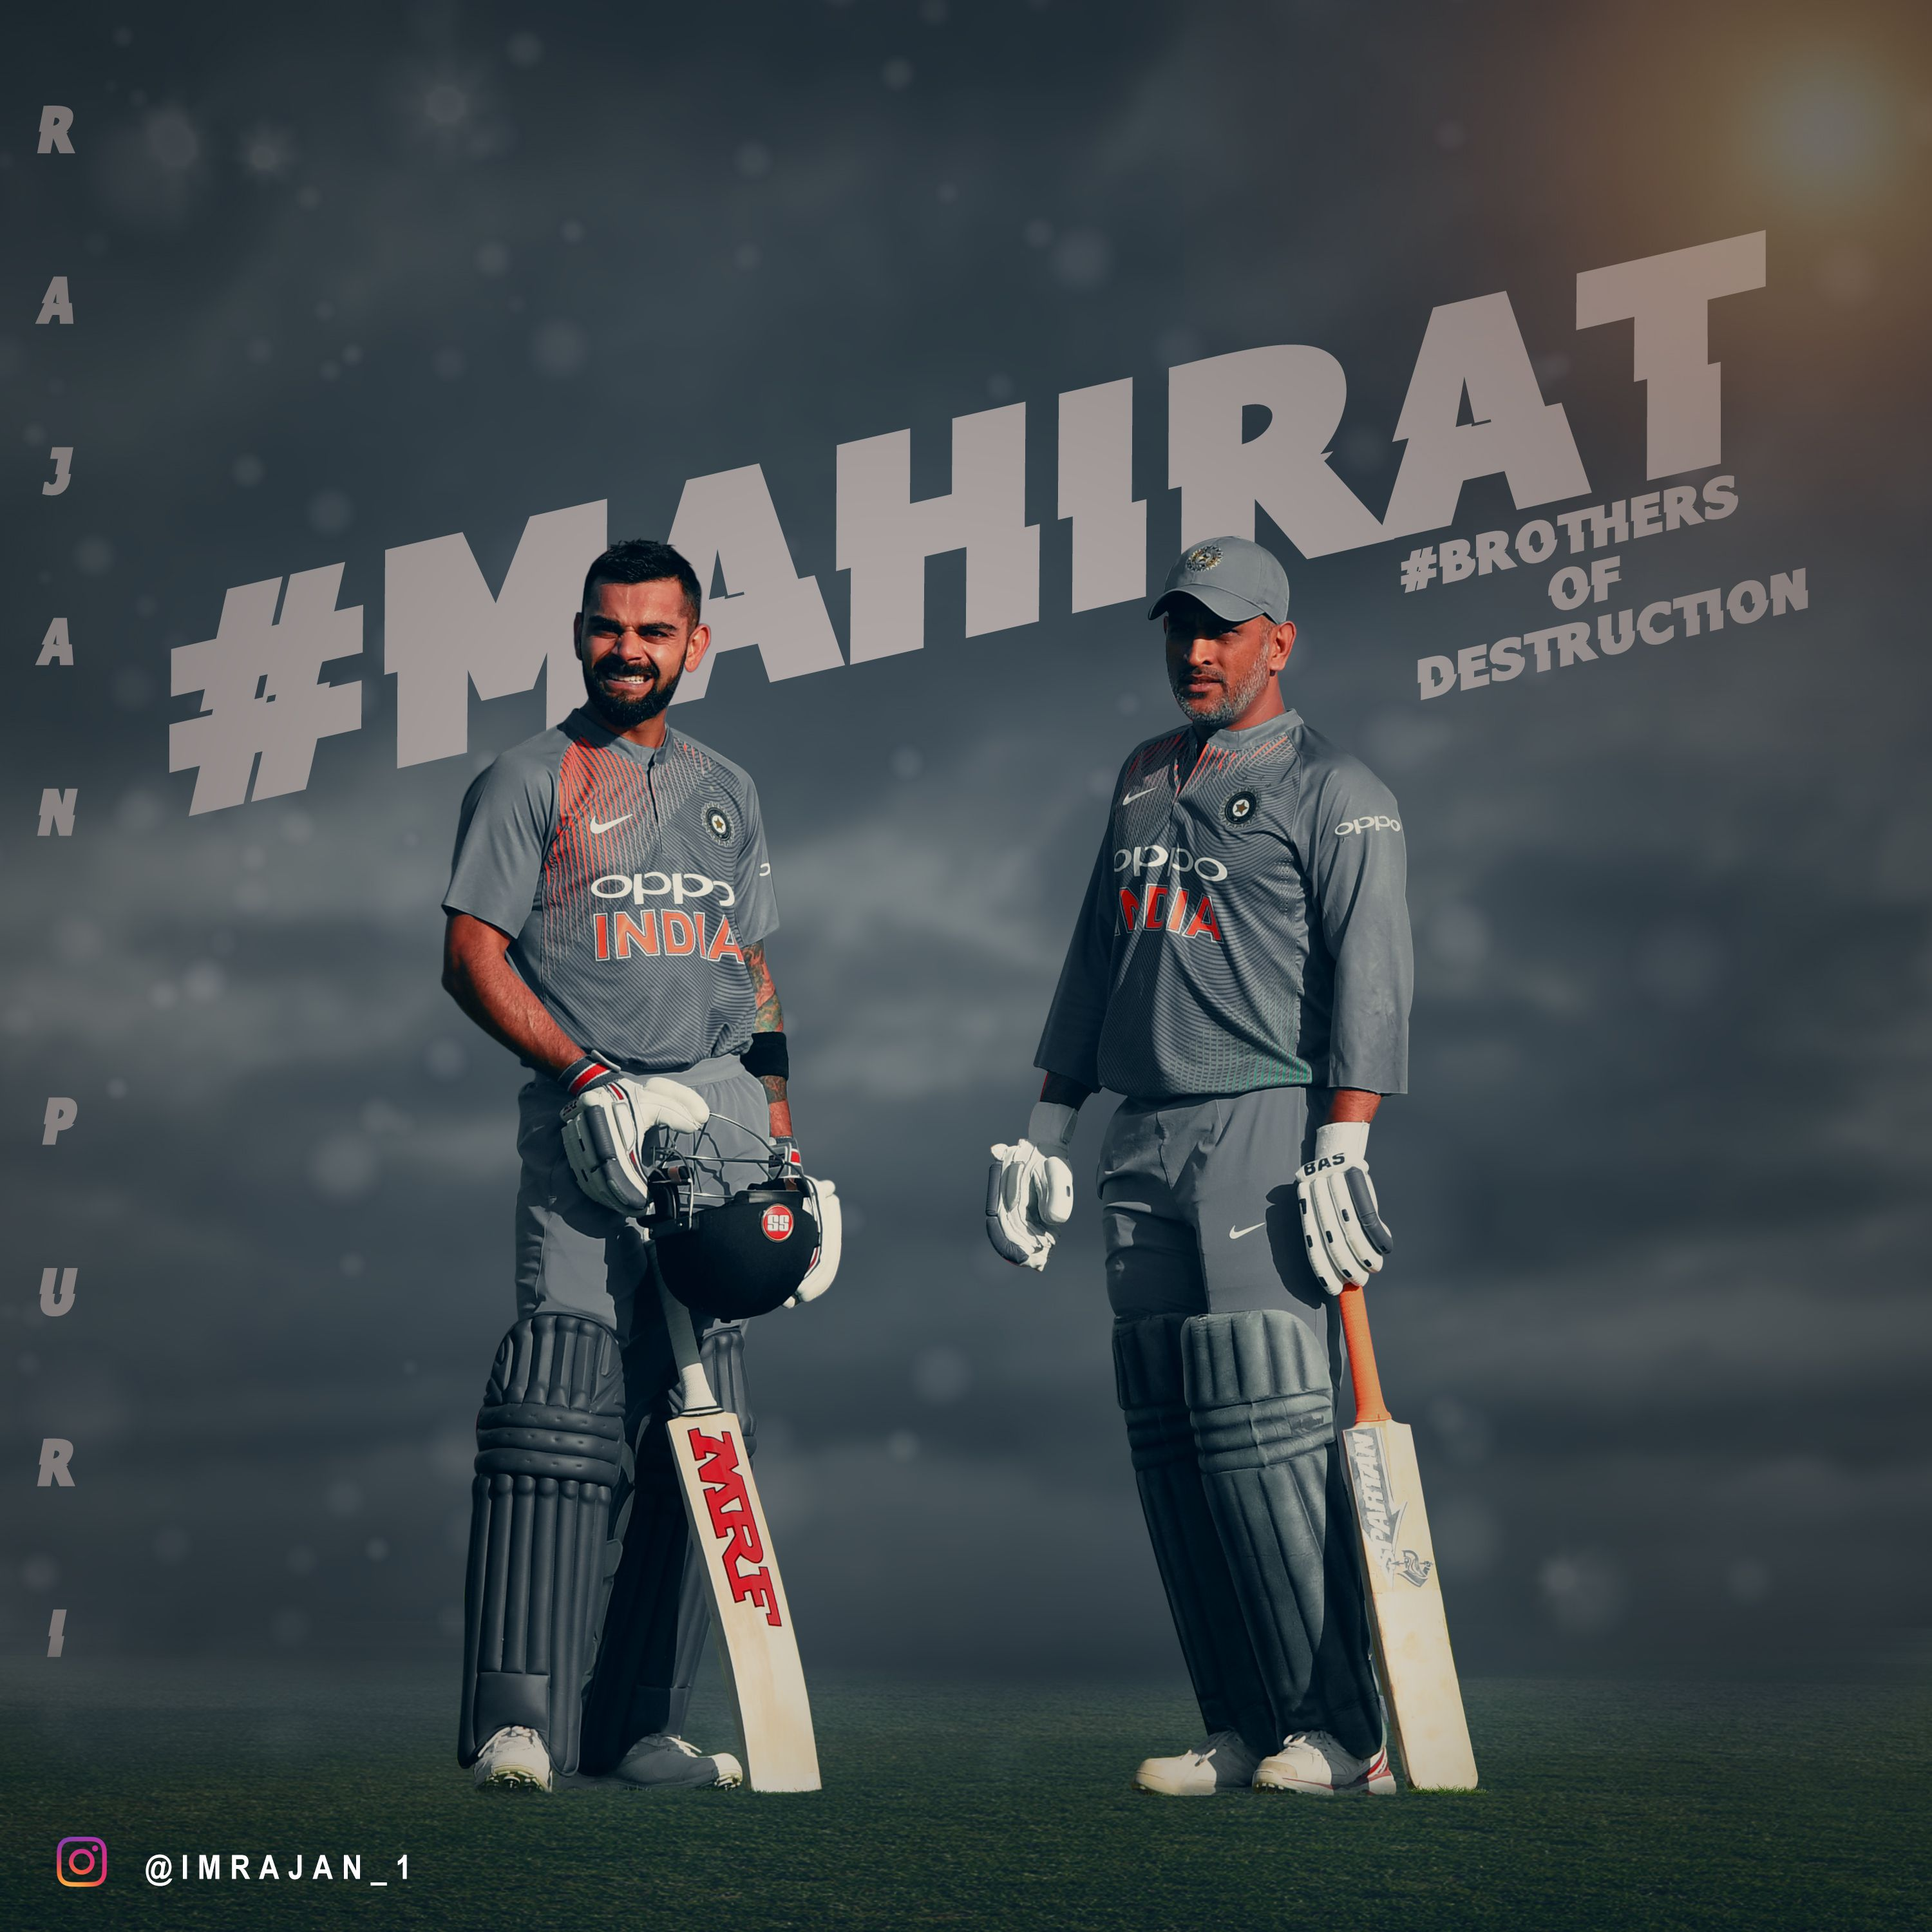 Ms Dhoni Cricket Wallpapers Virat Kohli Wallpapers Dhoni Wallpapers